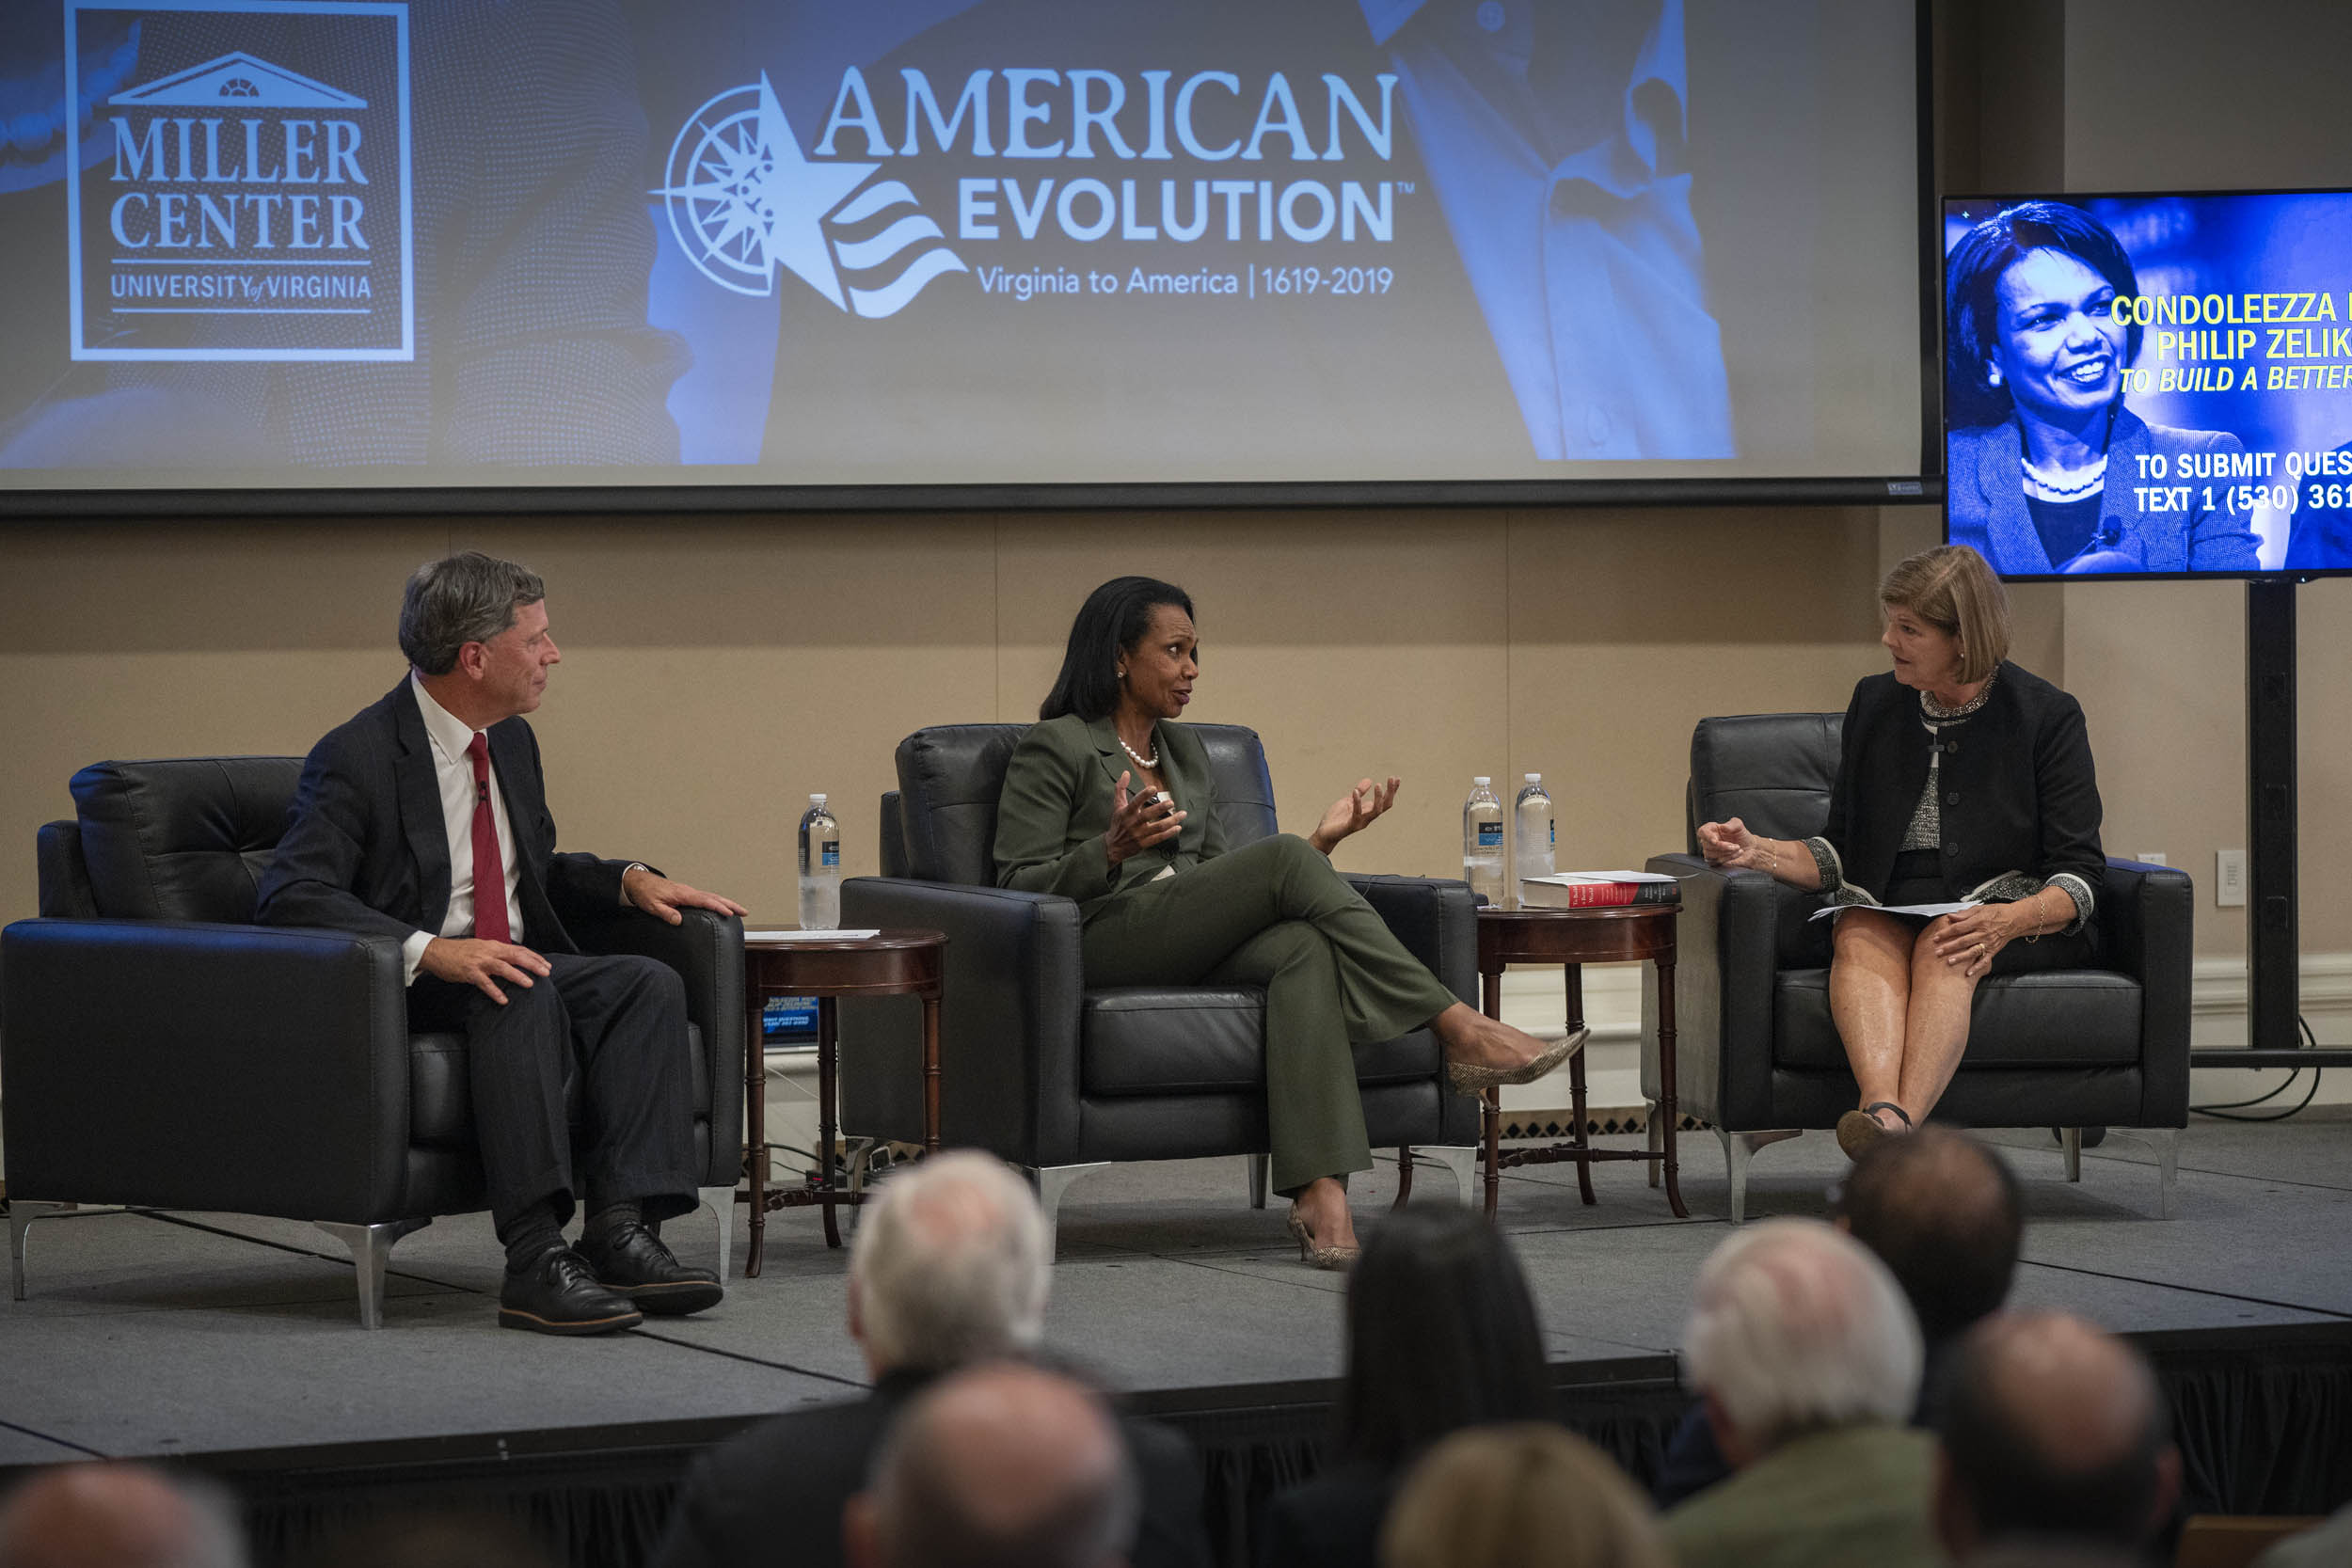 Philip Zelikow, left, Condoleezza Rice, center, and Ann Compton spoke to a large audience in Newcomb Hall on Thursday night. (Photos by Sanjay Suchak, University Communications)